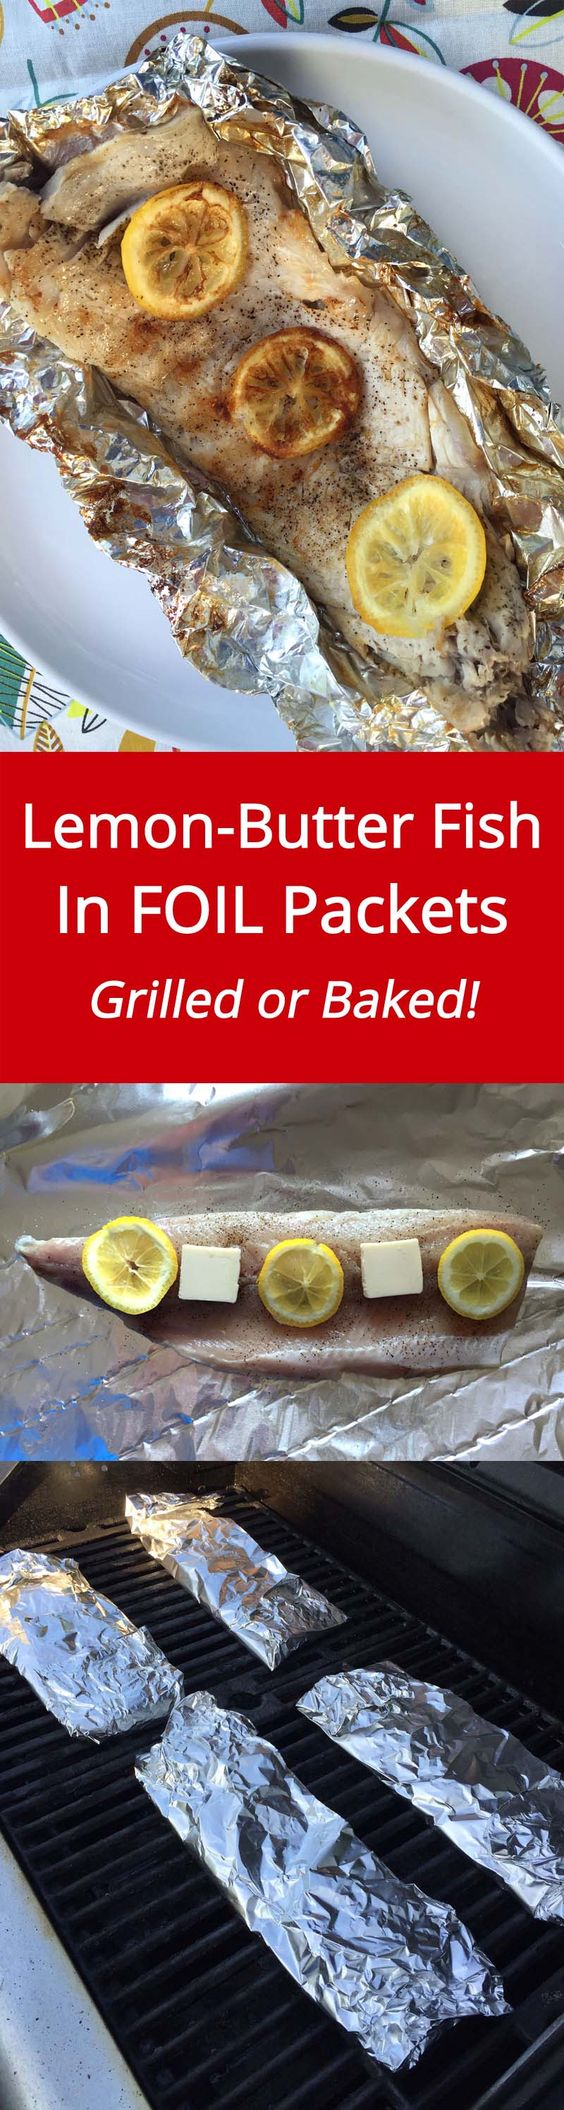 Foil packets foil packet recipes and fish recipes on for Bake fish in foil